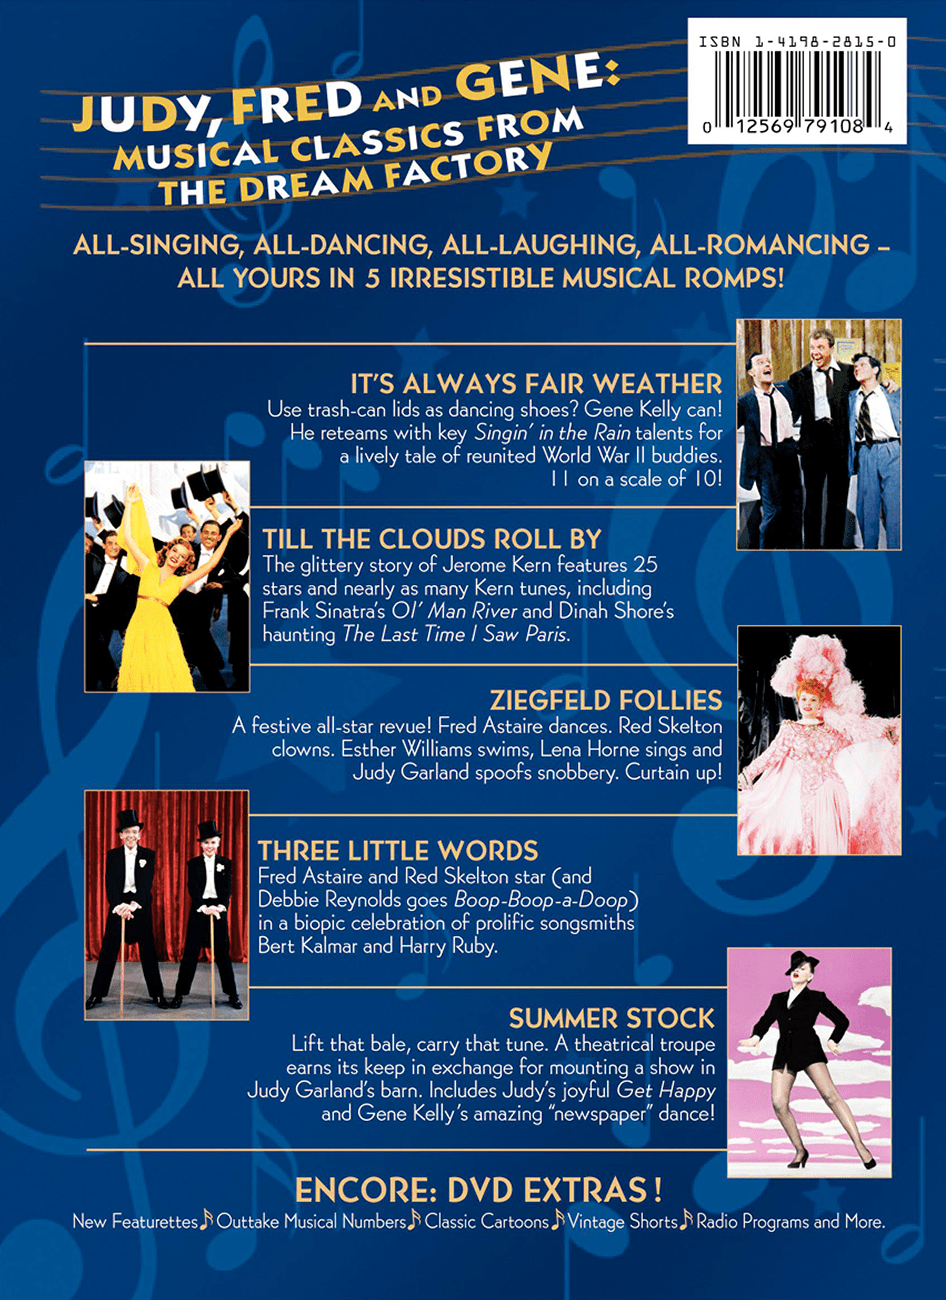 """2006 """"Classic Musicals From the Dream Factory"""" DVD boxed set"""